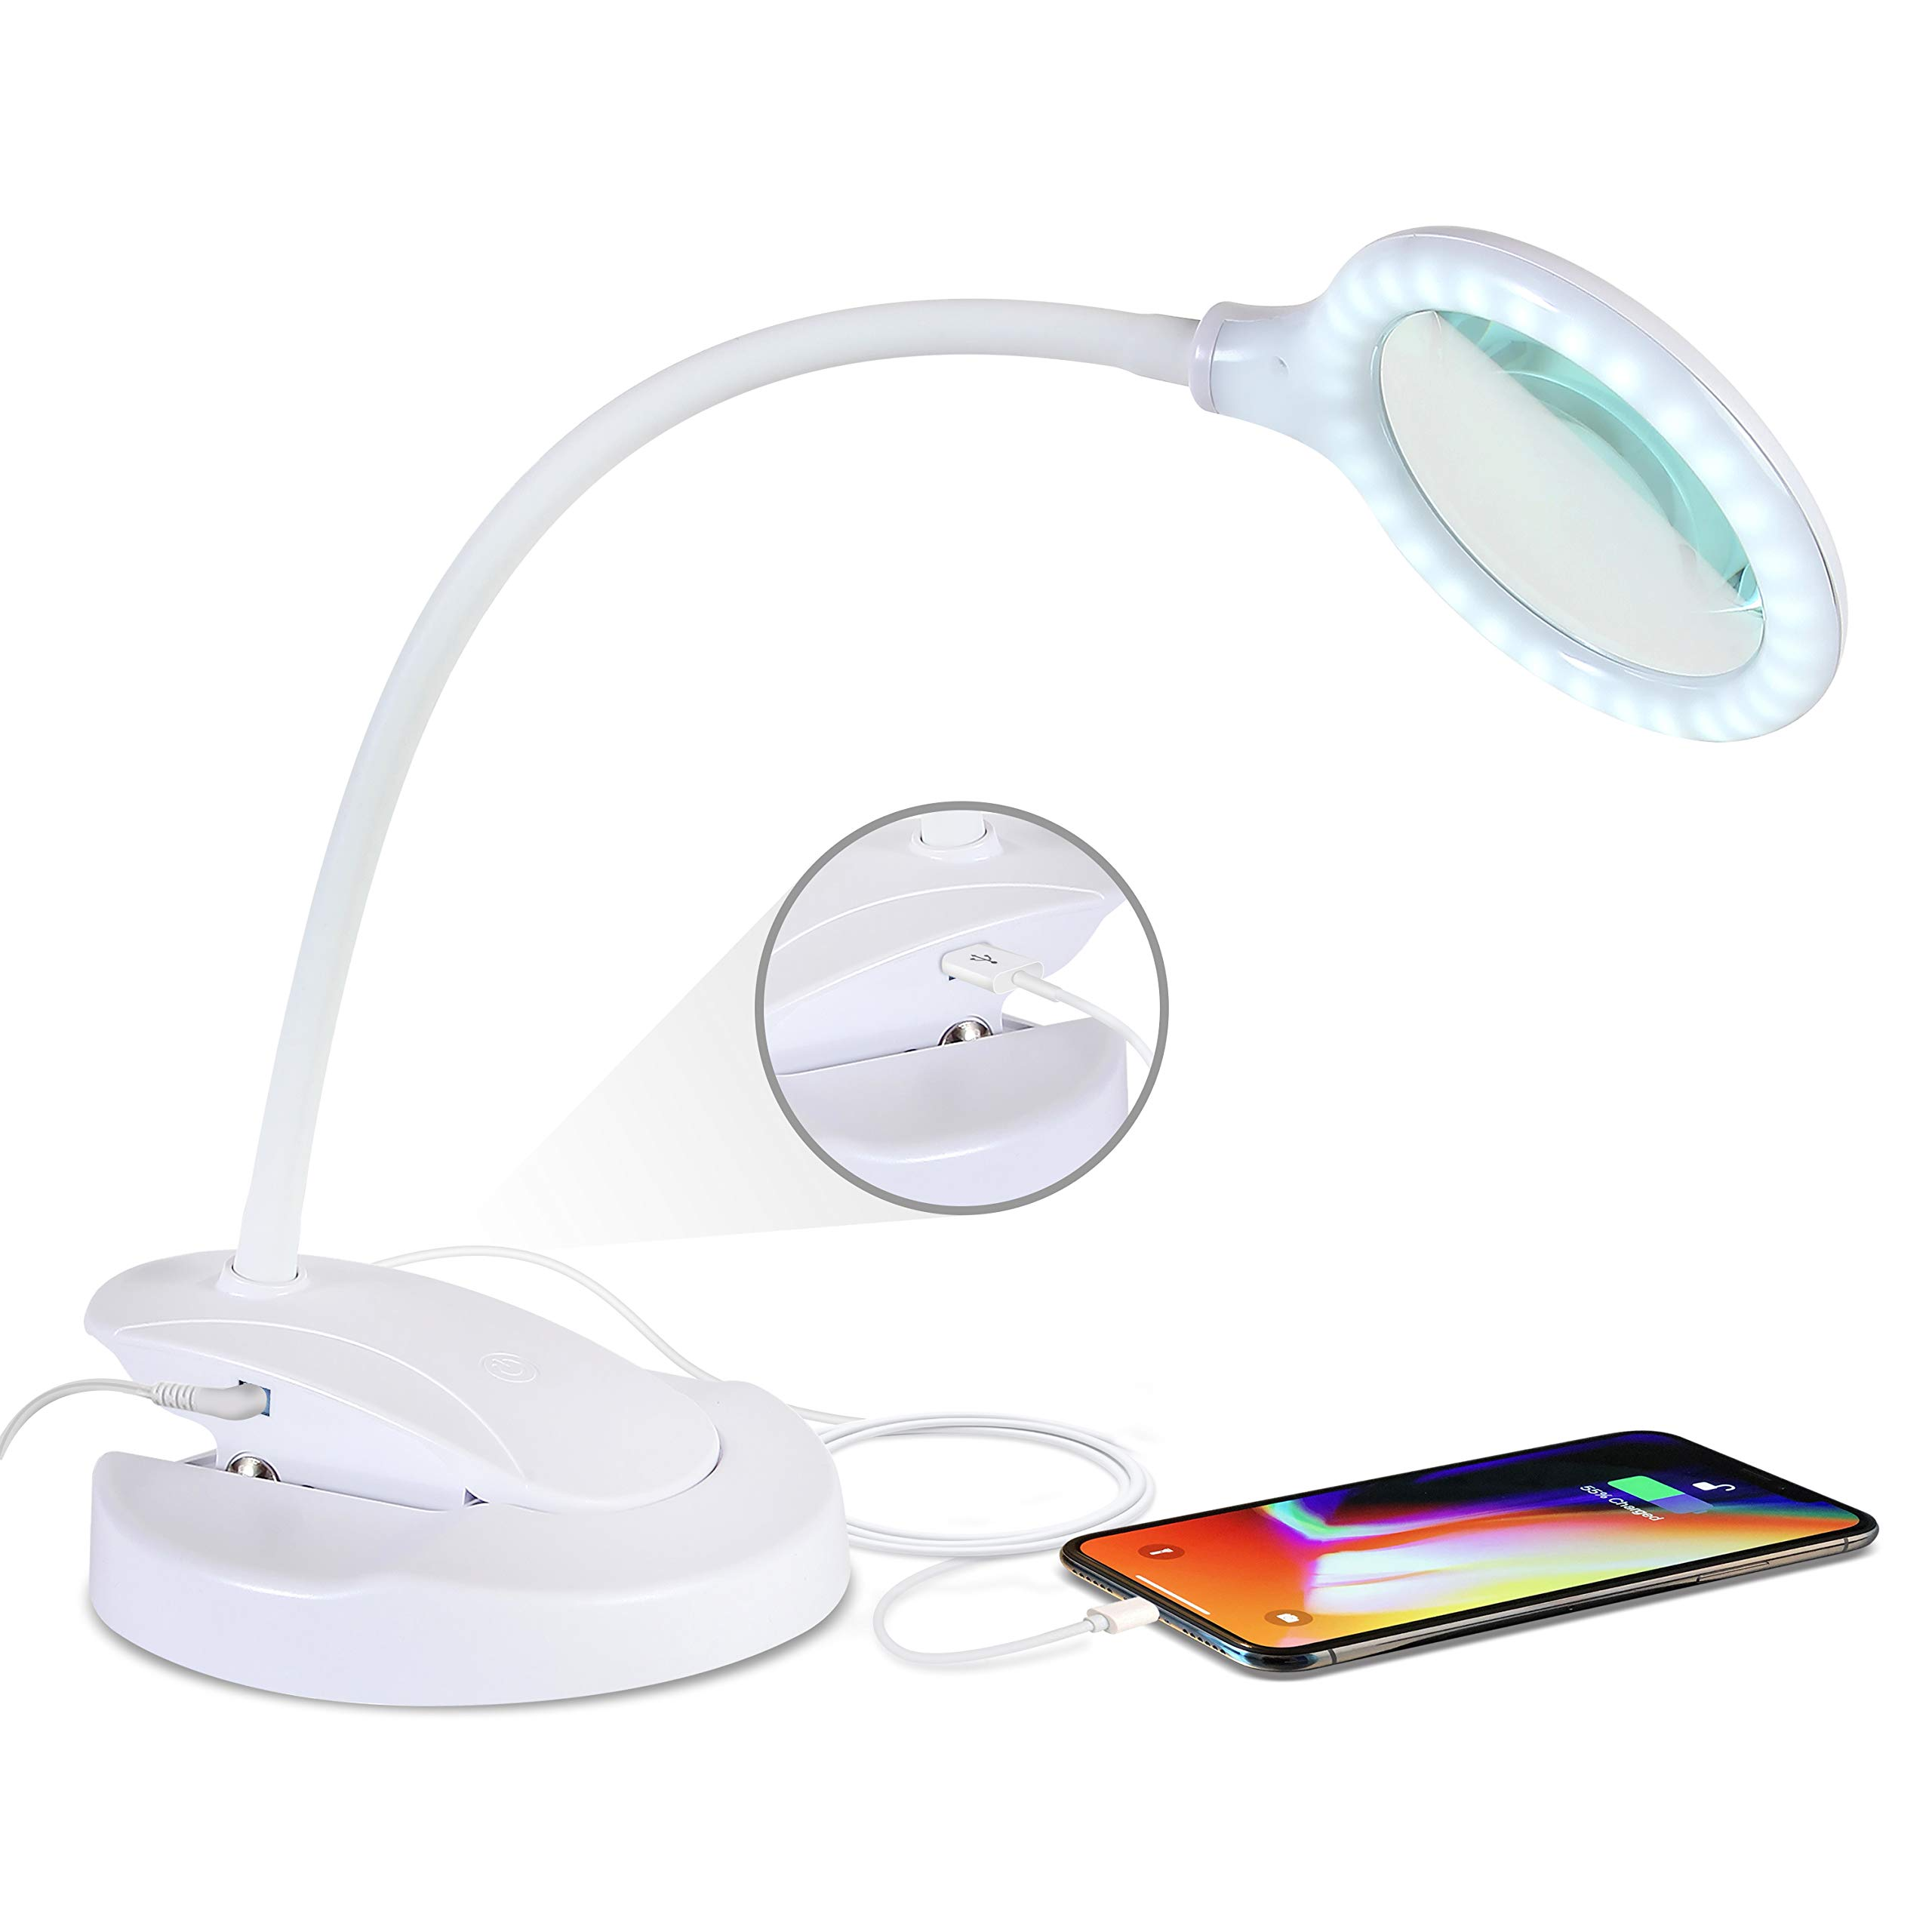 Brightech - Lightview LED Magnifying Lamp with USB Charging Port - Lightview Pro 2-in-1 Lighted Glass Magnifier with Stand, Clamp - Dimmable, Bright Light for Reading, Crafts - 1.75x - White by Brightech